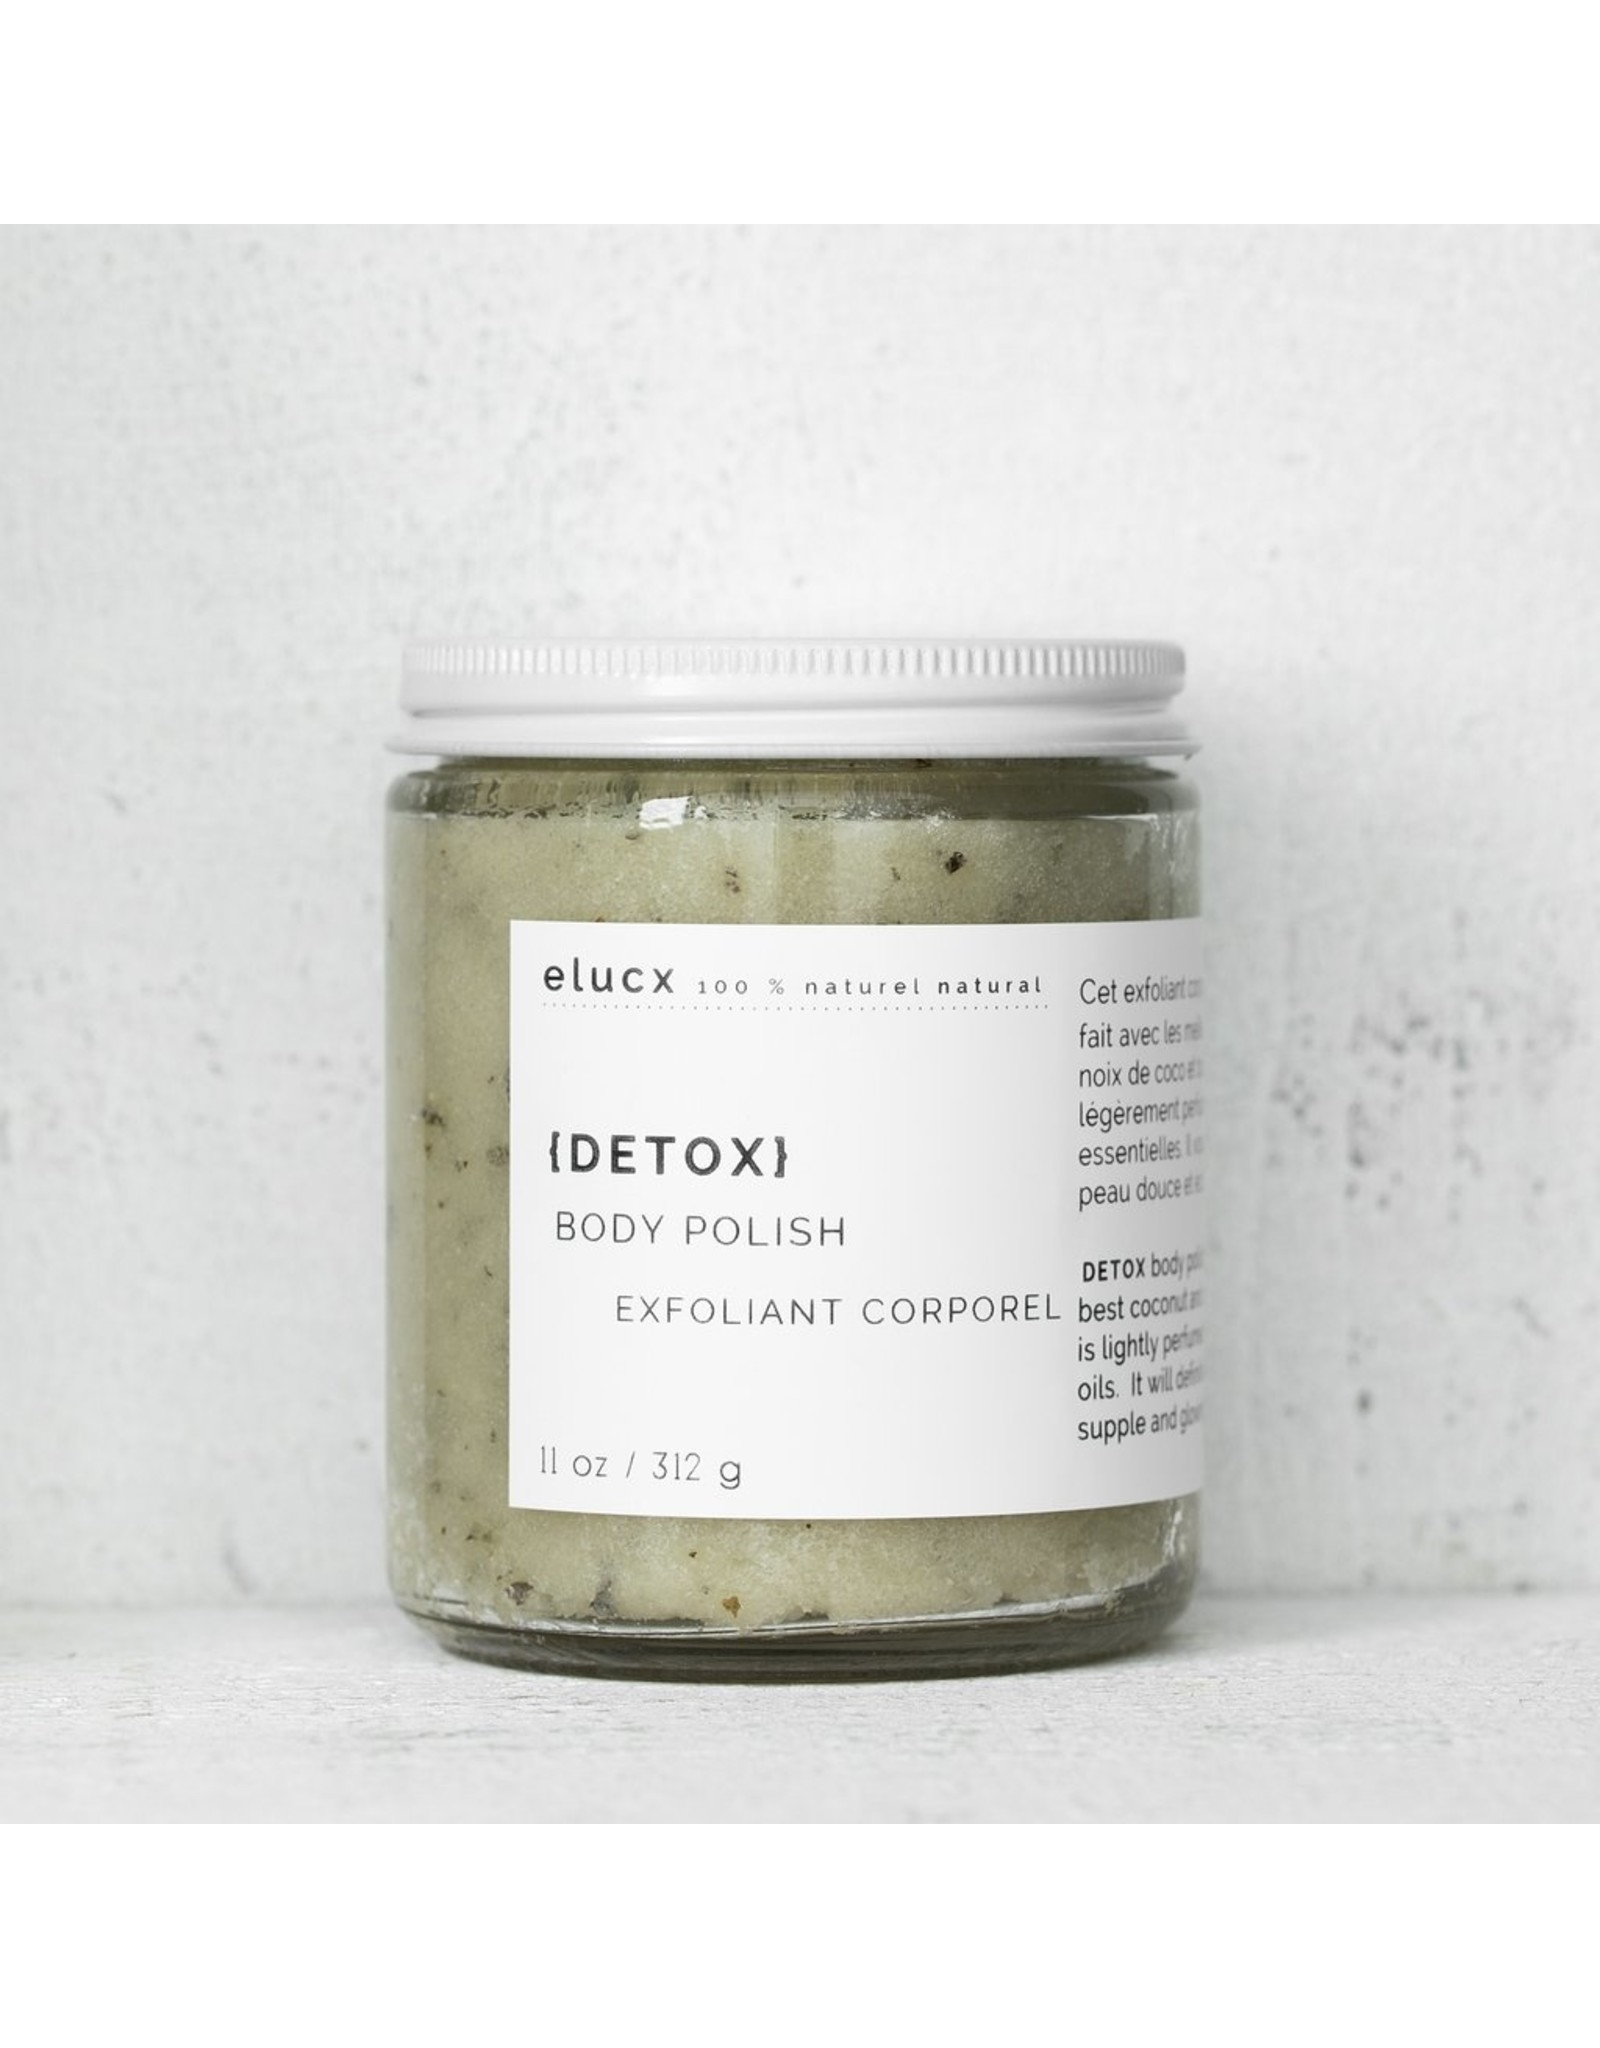 Elucx Body Polish by Elucx